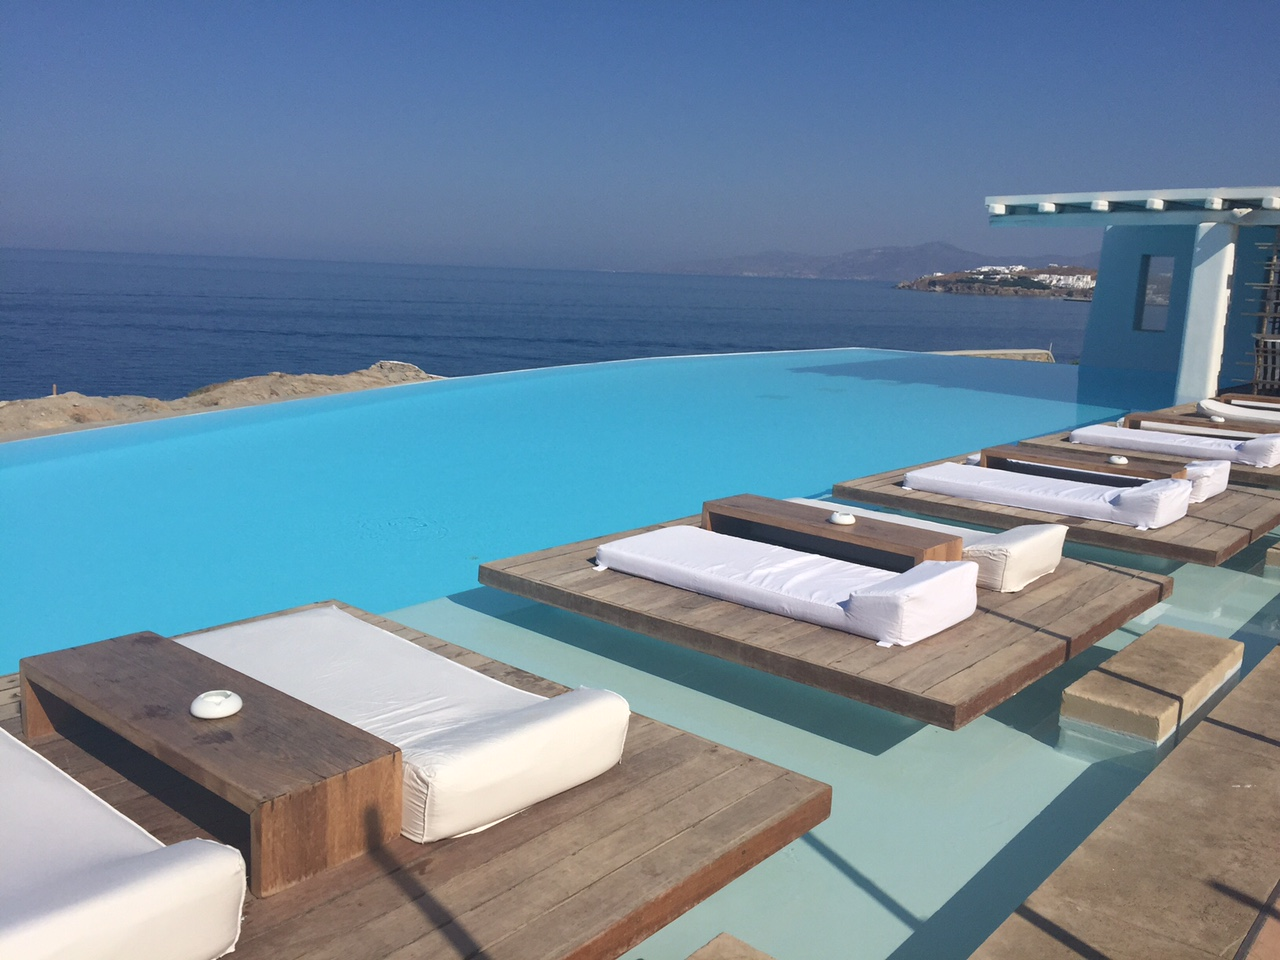 The infinity pool at Cavo Tagoo